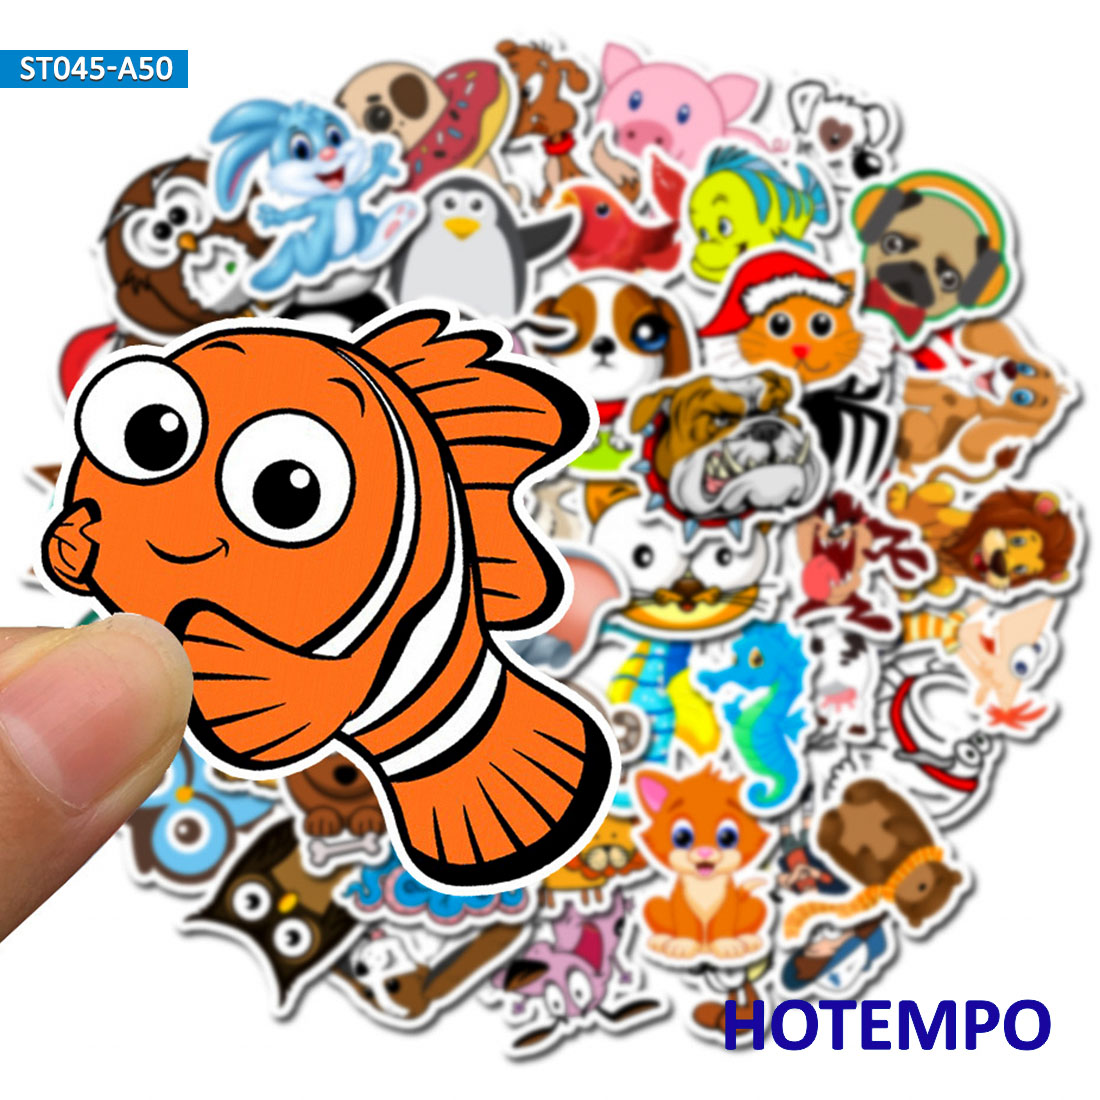 50pcs Cartoon Cute Animal Stickers For Kids Girl Children Teacher School Gift DIY Letter Diary Scrapbooking Stickers